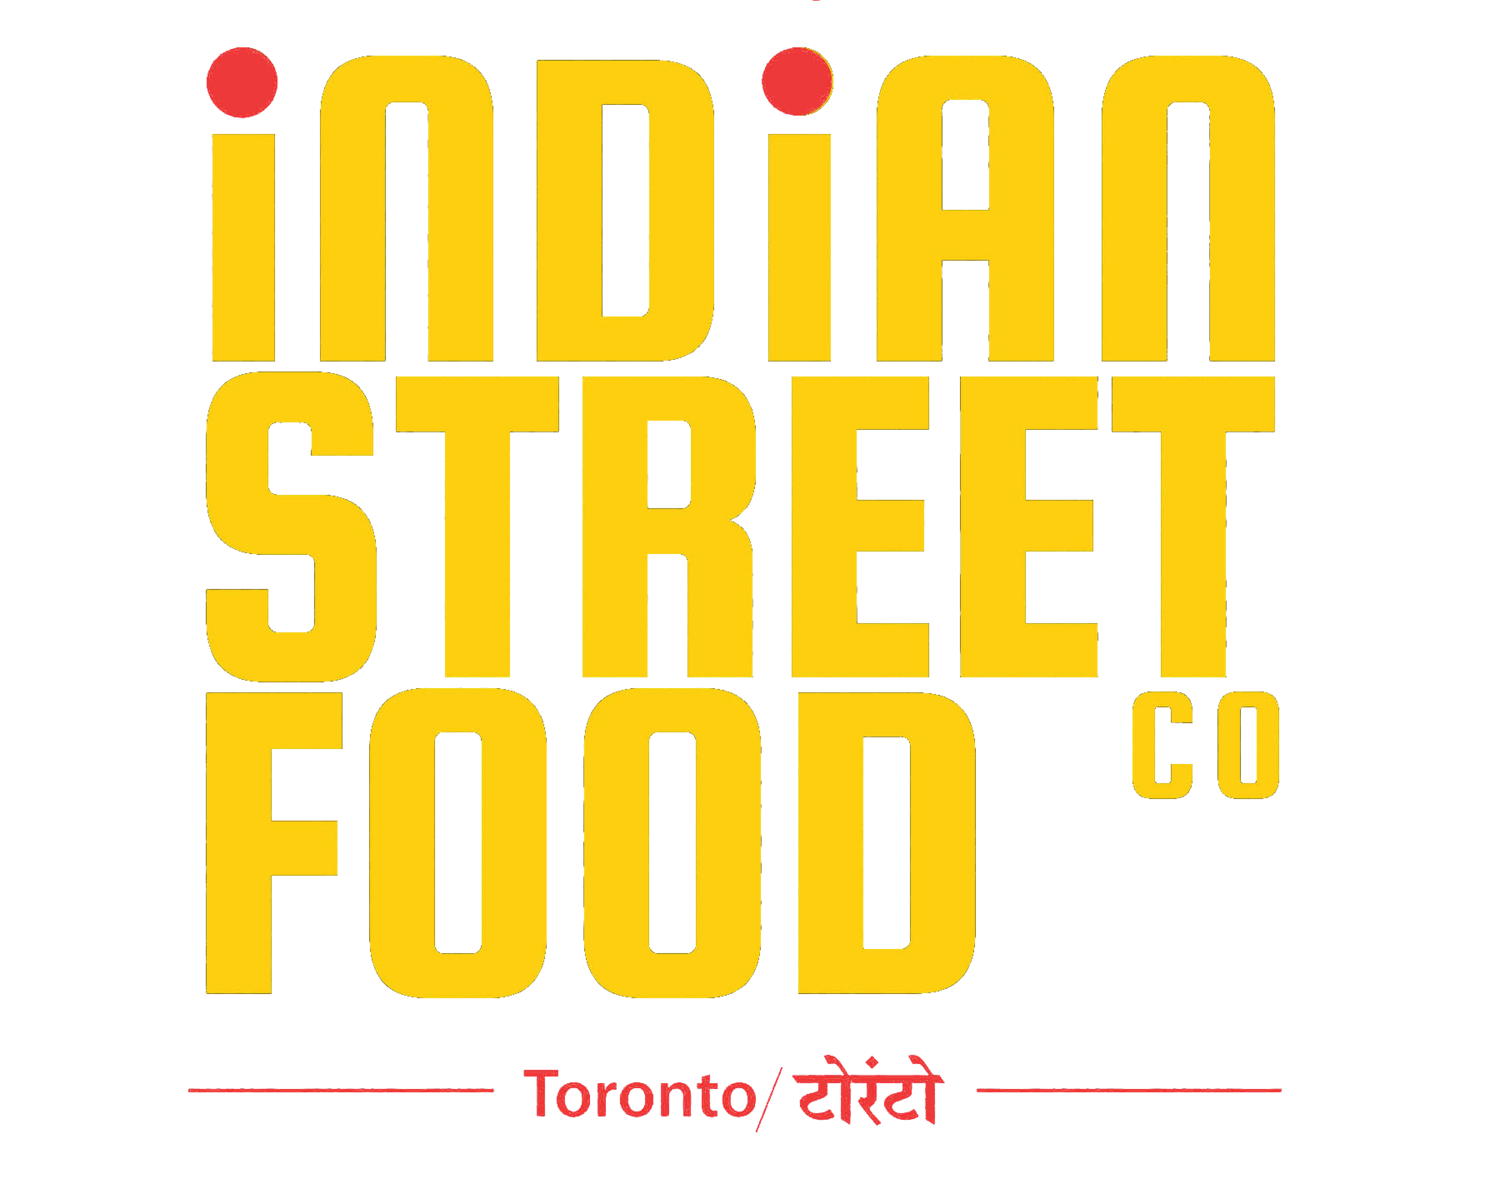 Indian Street Food Co.